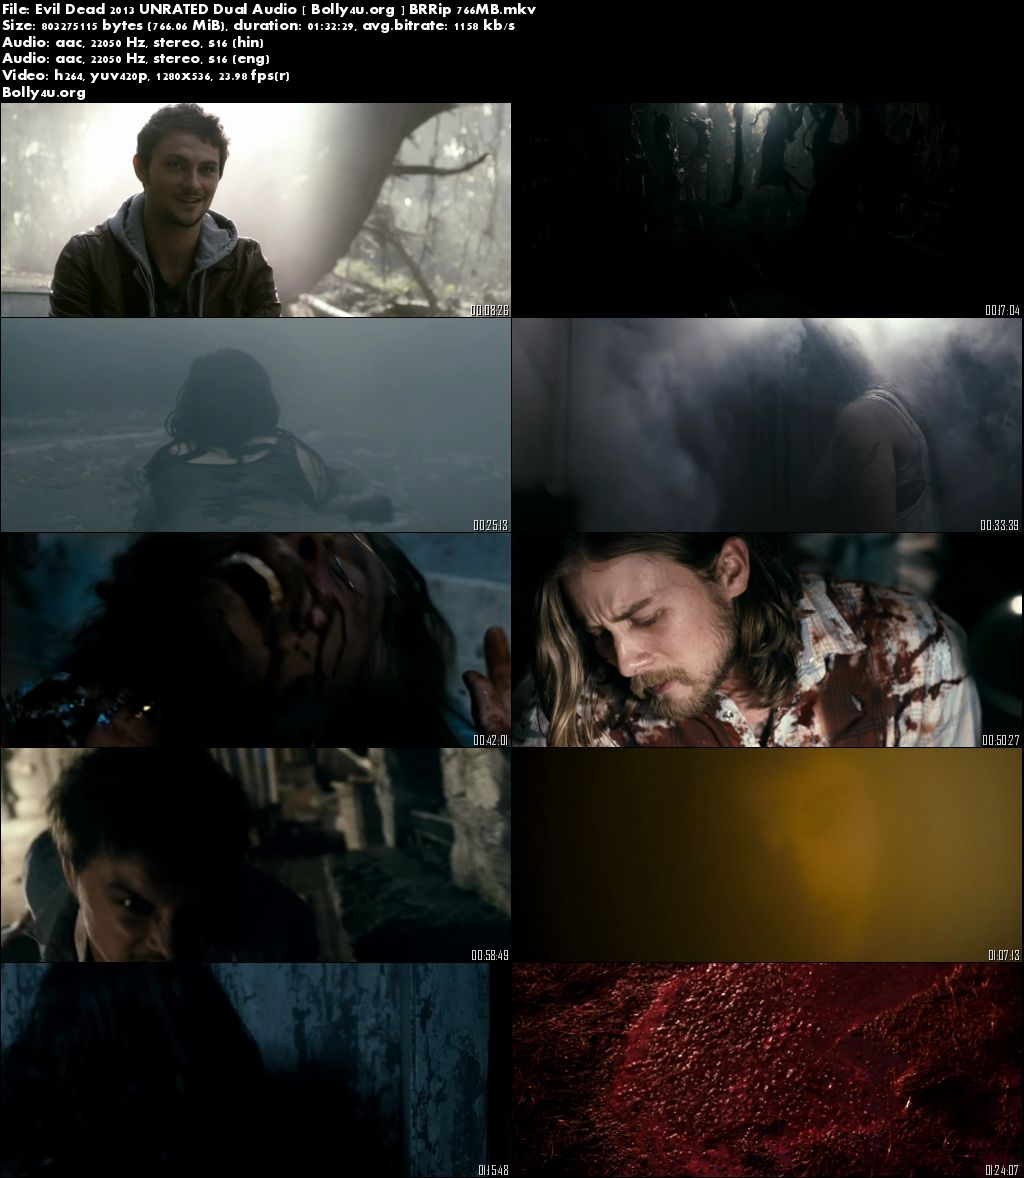 Evil Dead 2013 BRRip Hindi 720p UNRATED Dual Audio 750MB Download